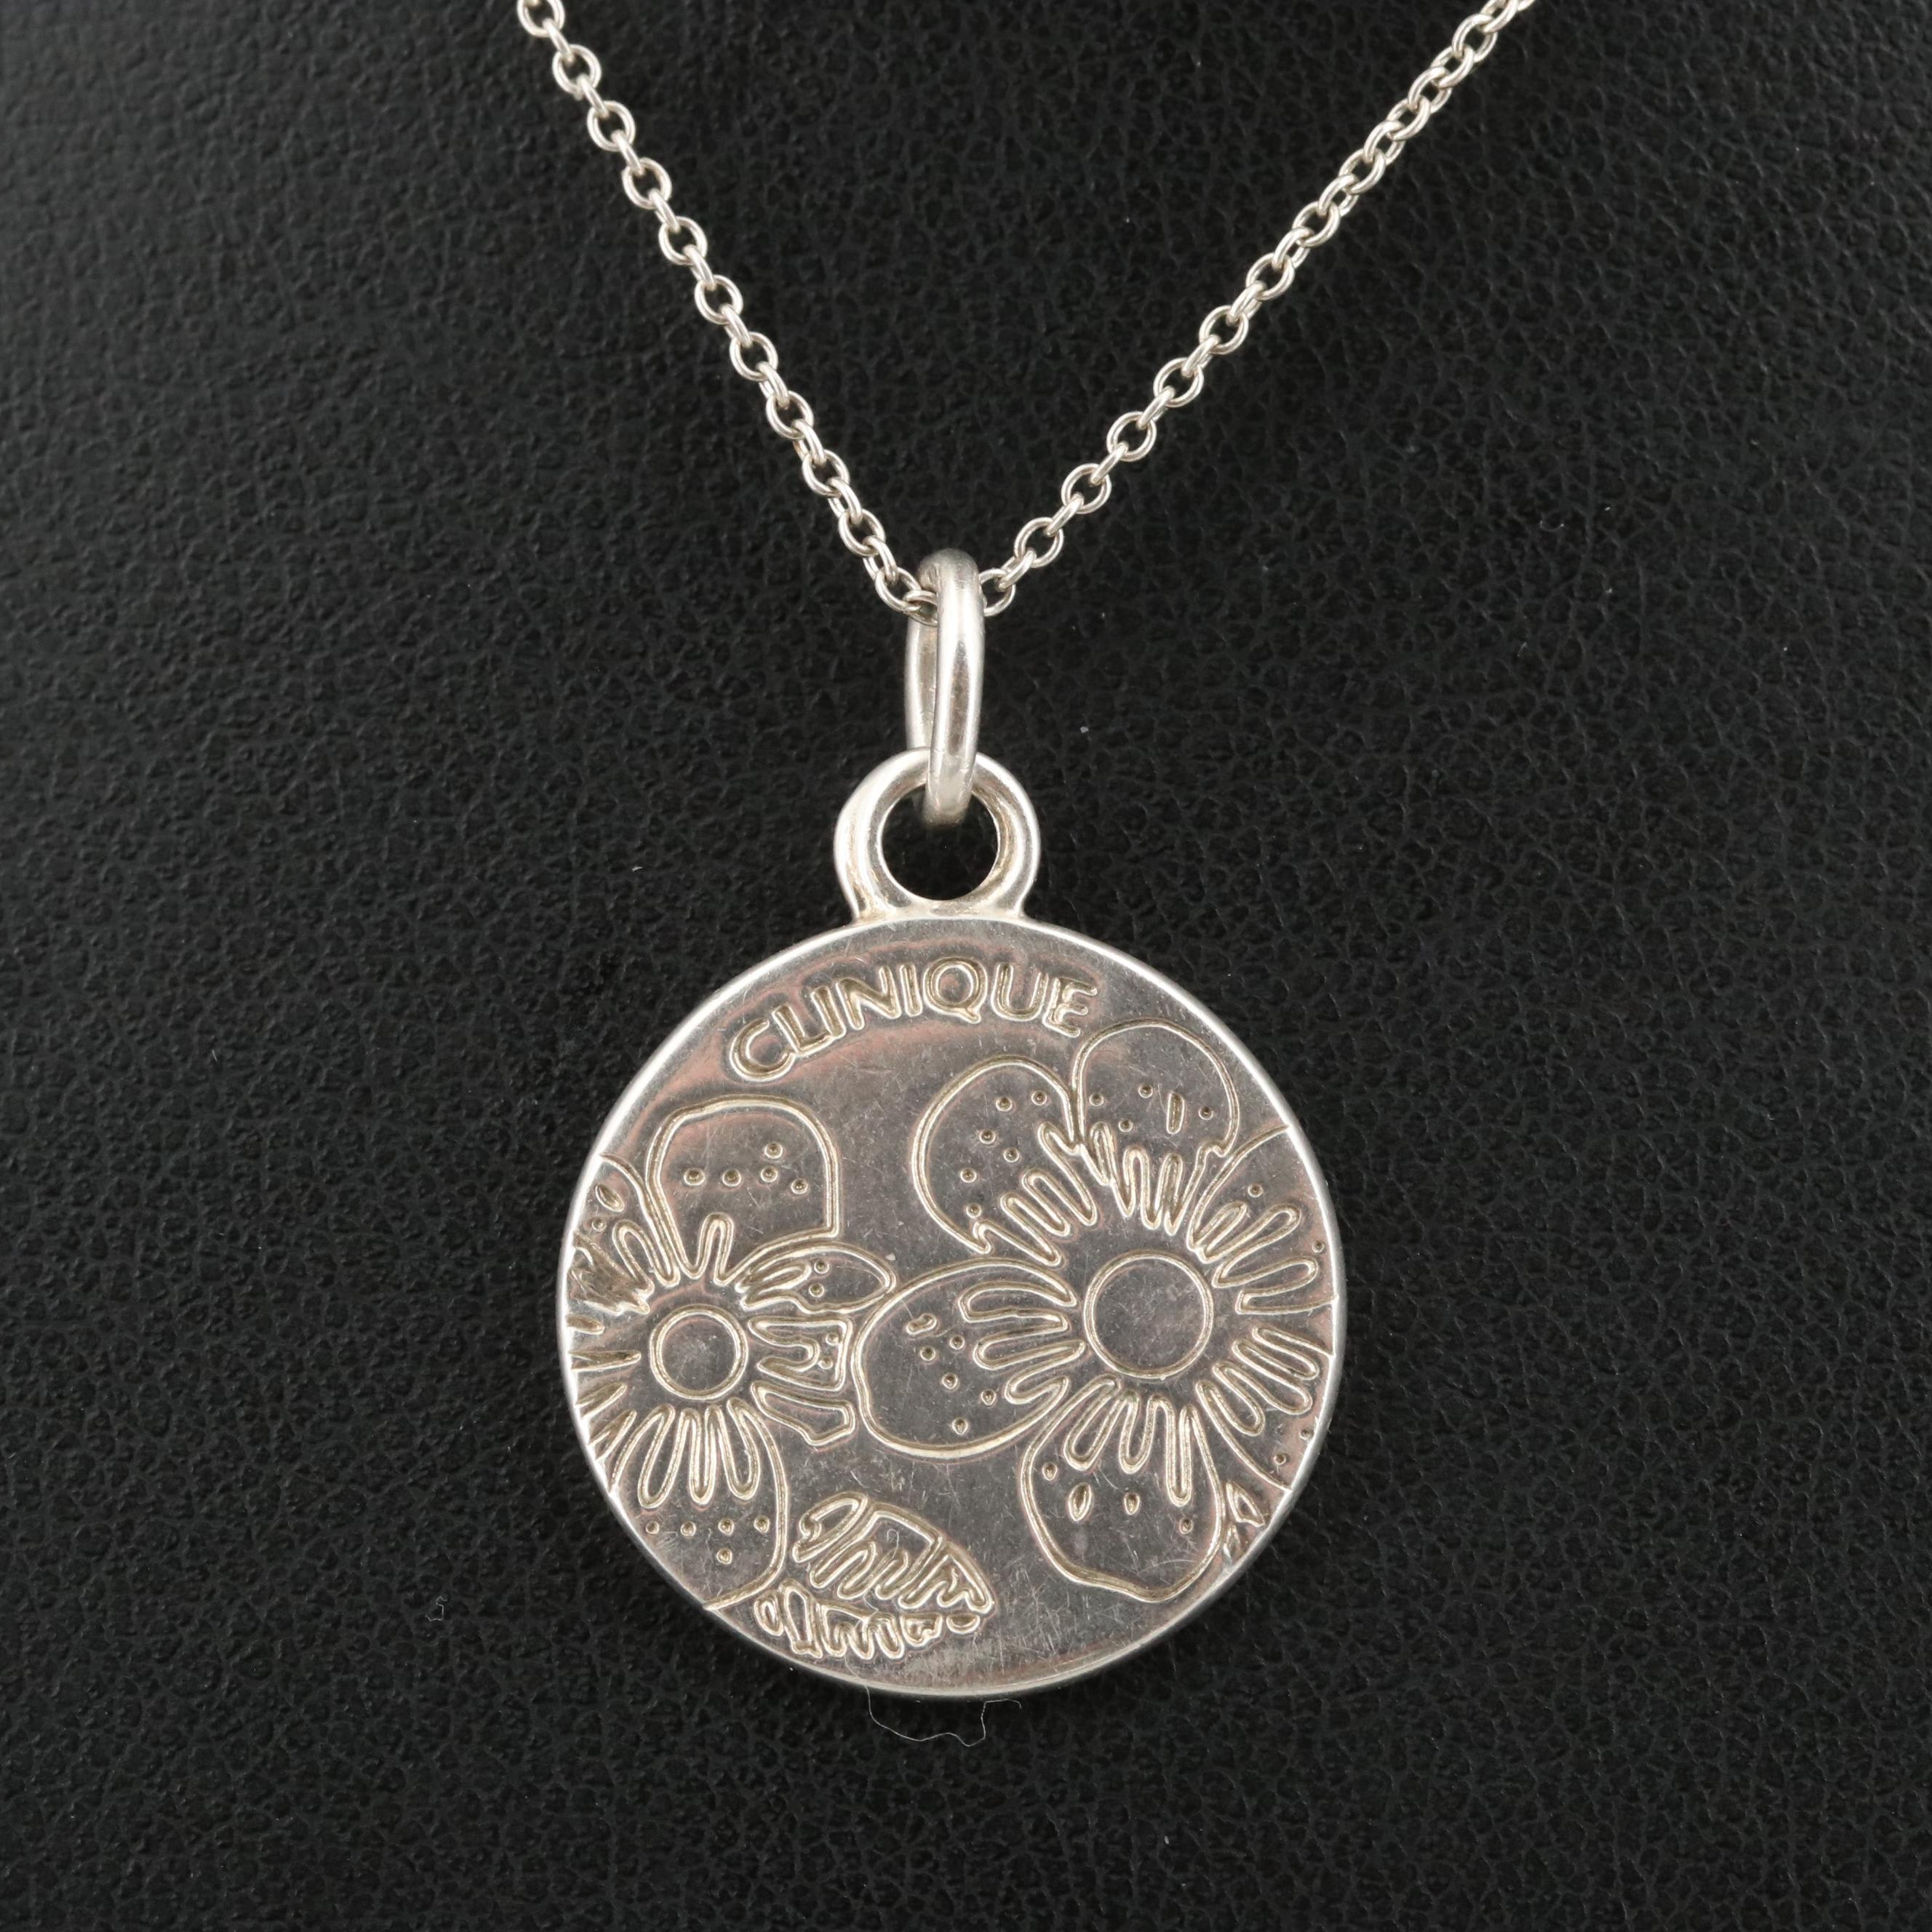 Tiffany & Co Sterling Silver Clinique Floral Pendant Necklace